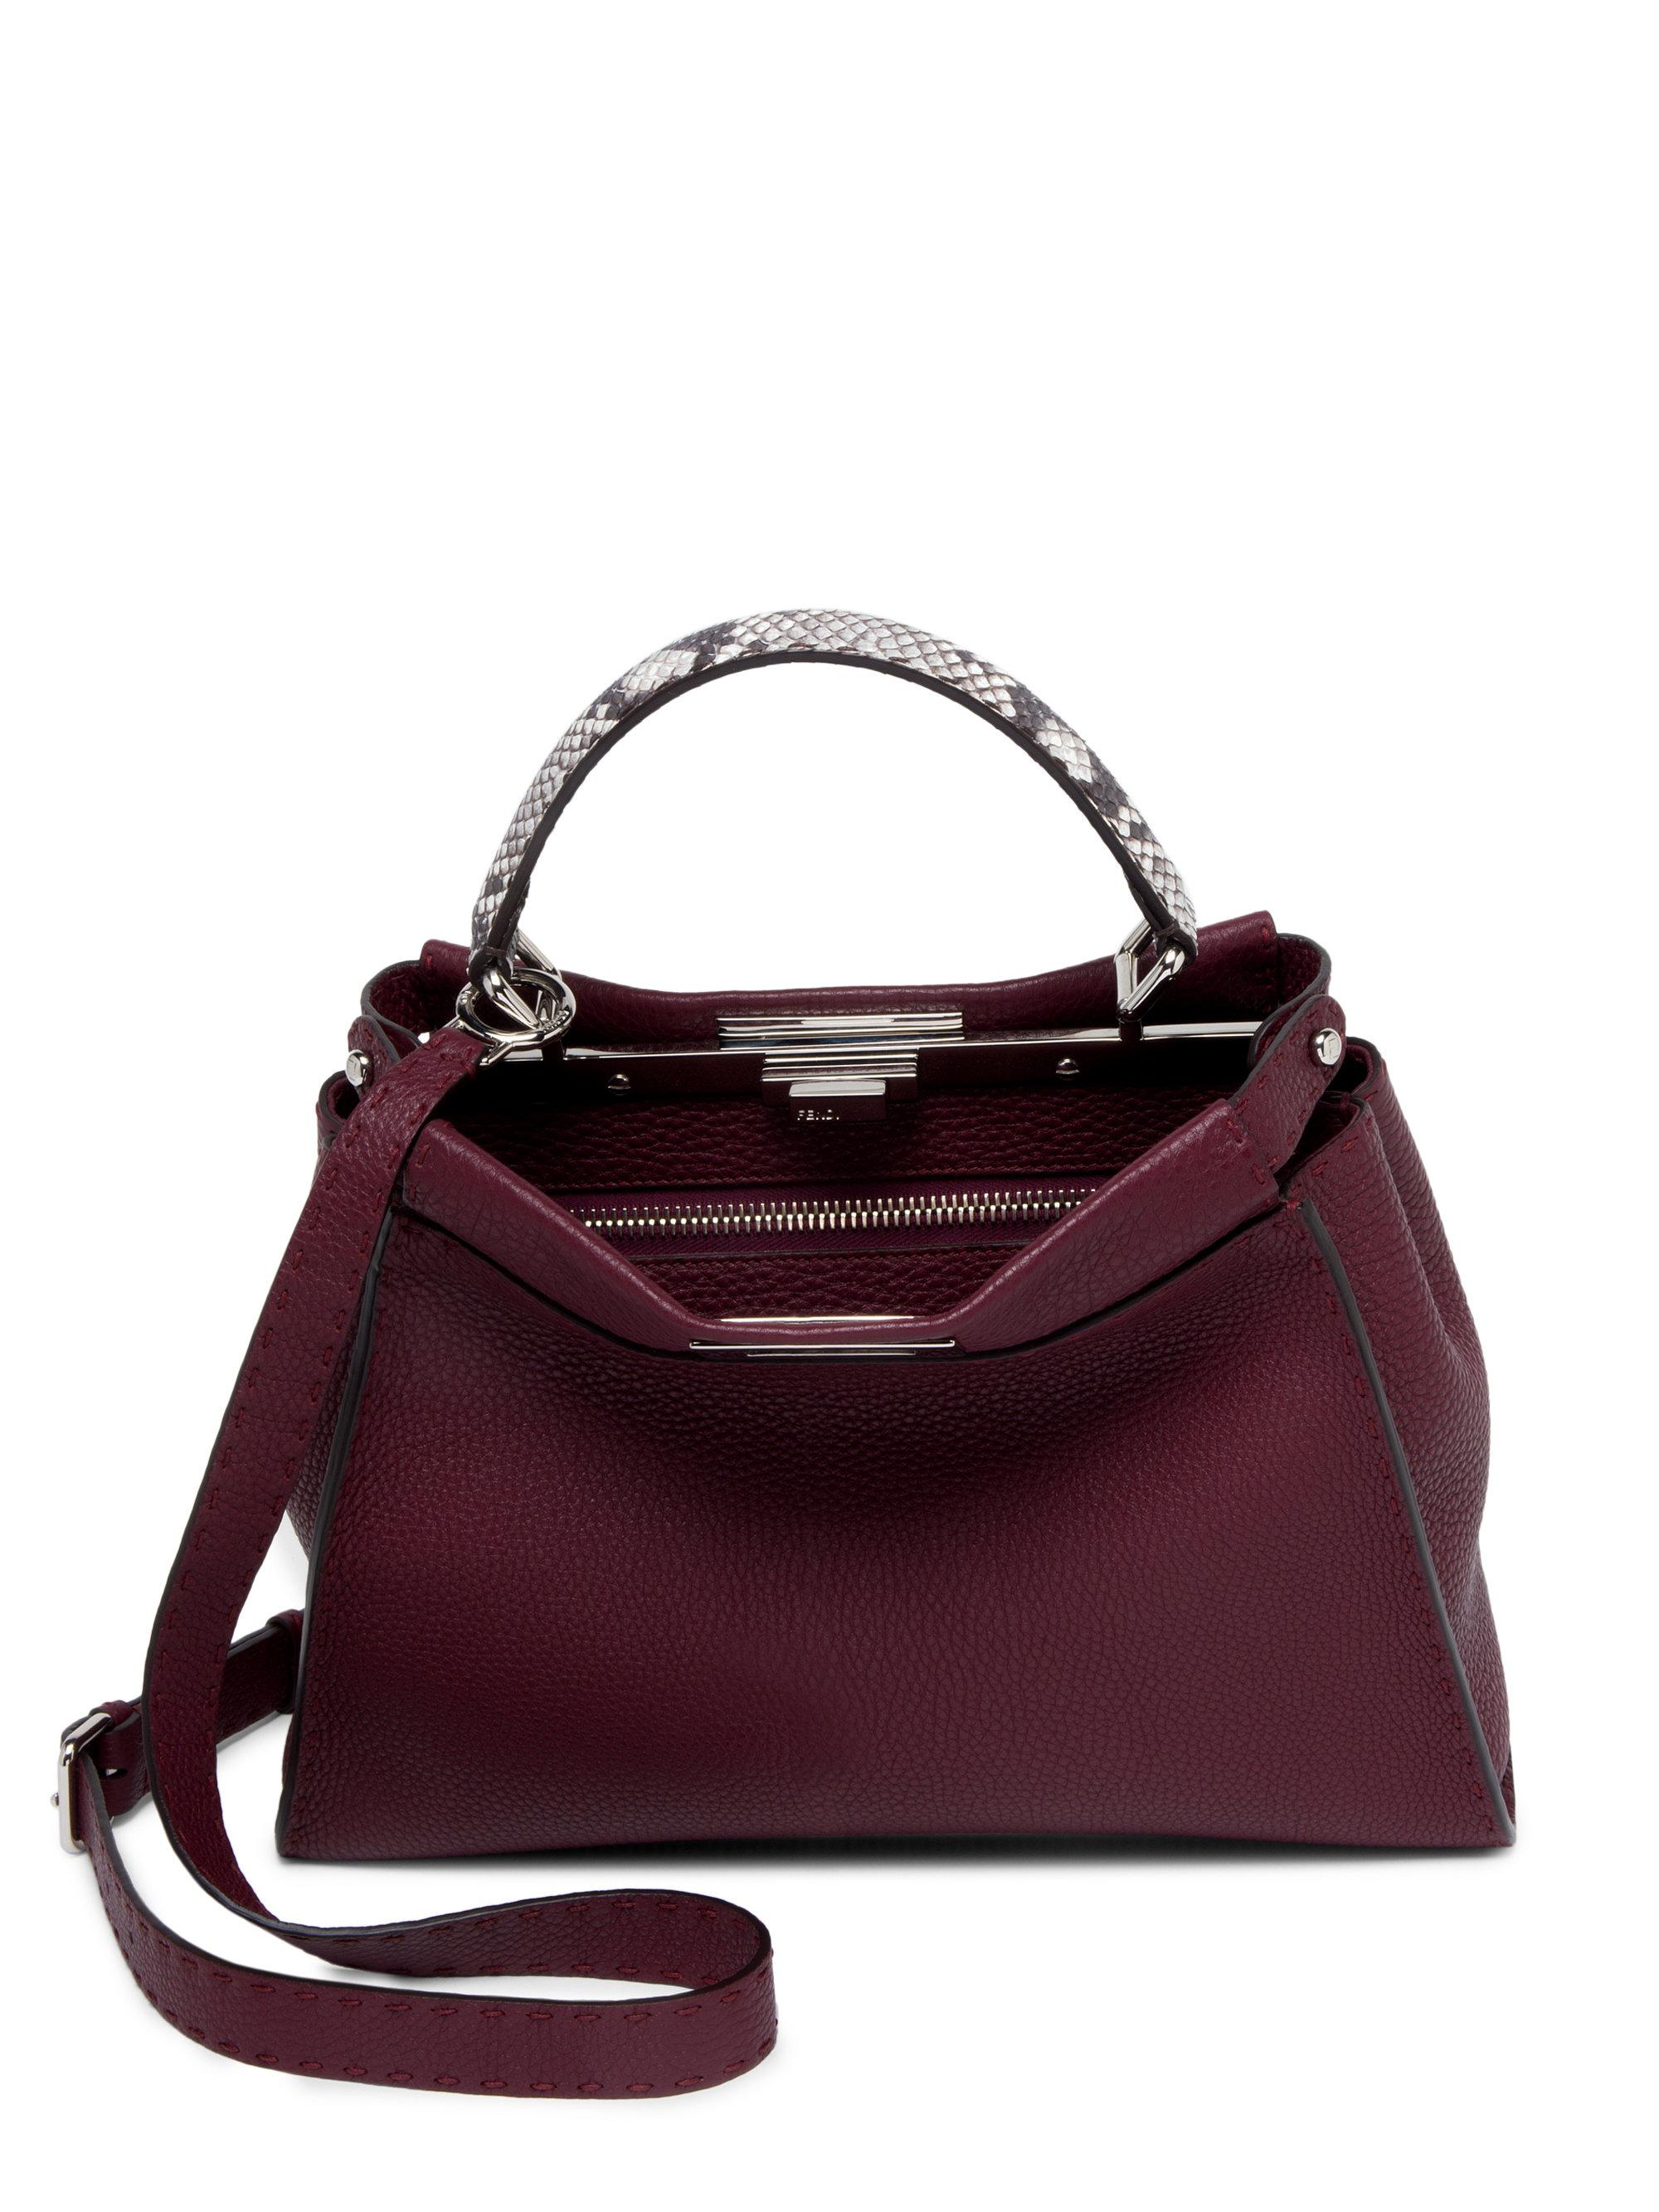 Fendi - Multicolor Selleria Peekaboo Leather Handbag - Lyst b6644e2796782